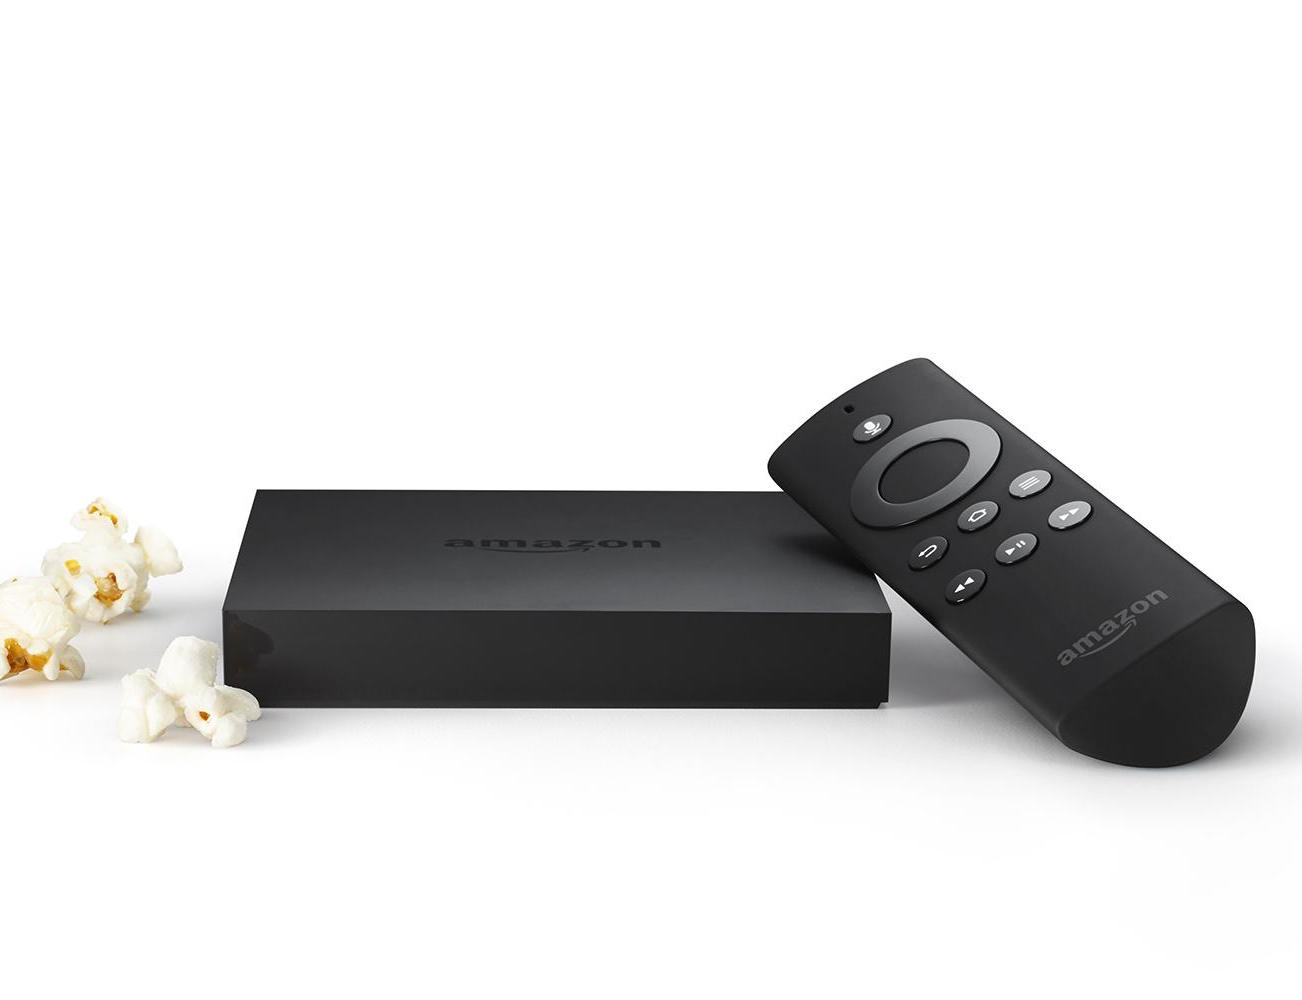 Amazon Fire TV – Connecting Your HDTV to a New World of Online Entertainment